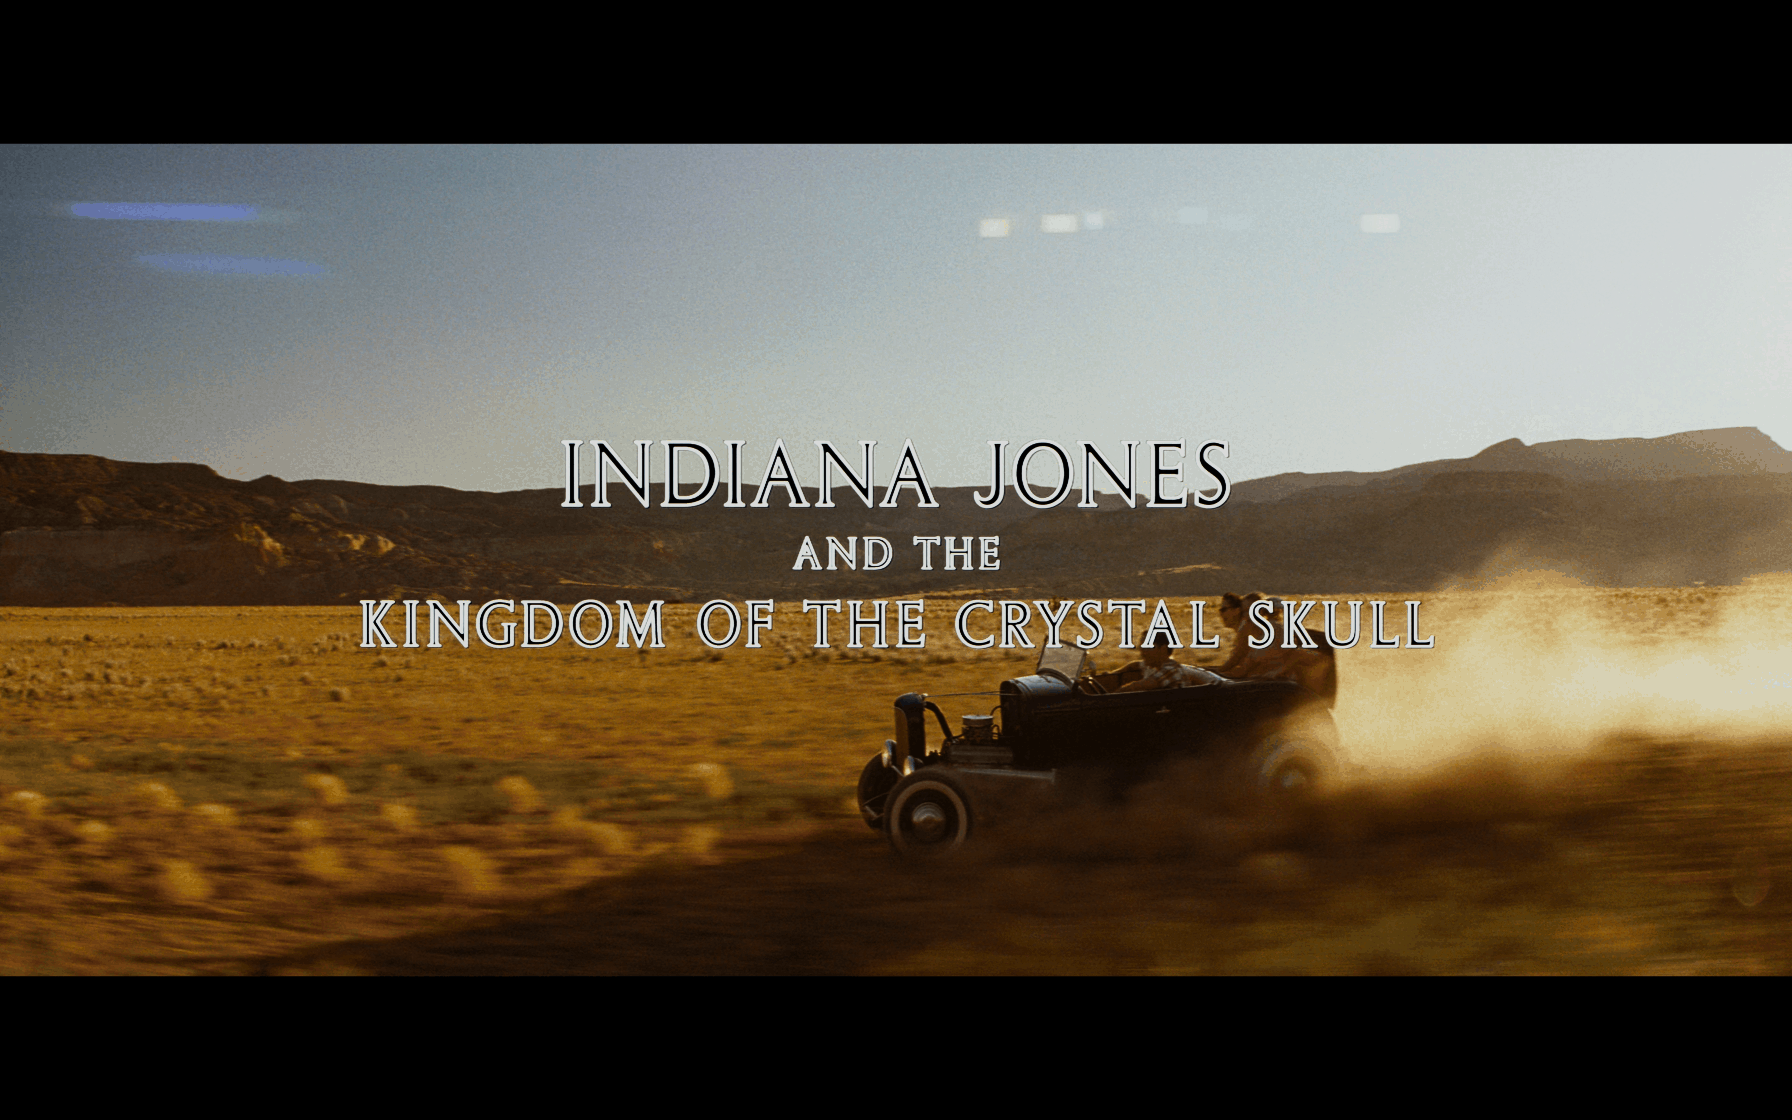 Indiana Jones and the Kingdom of the Crystal Skull 4K title